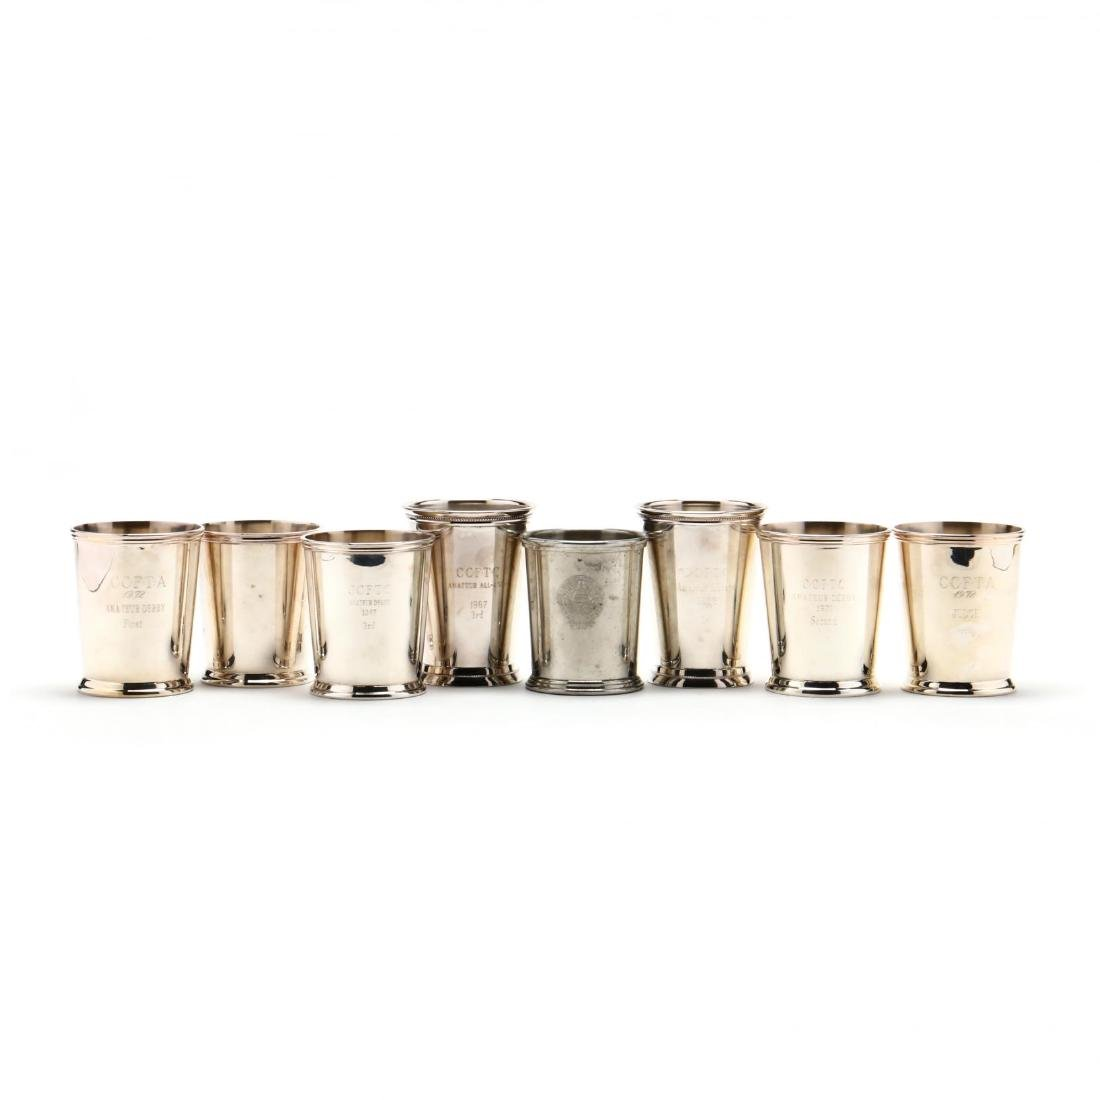 Eight Silverplate and Pewter Mint Juleps